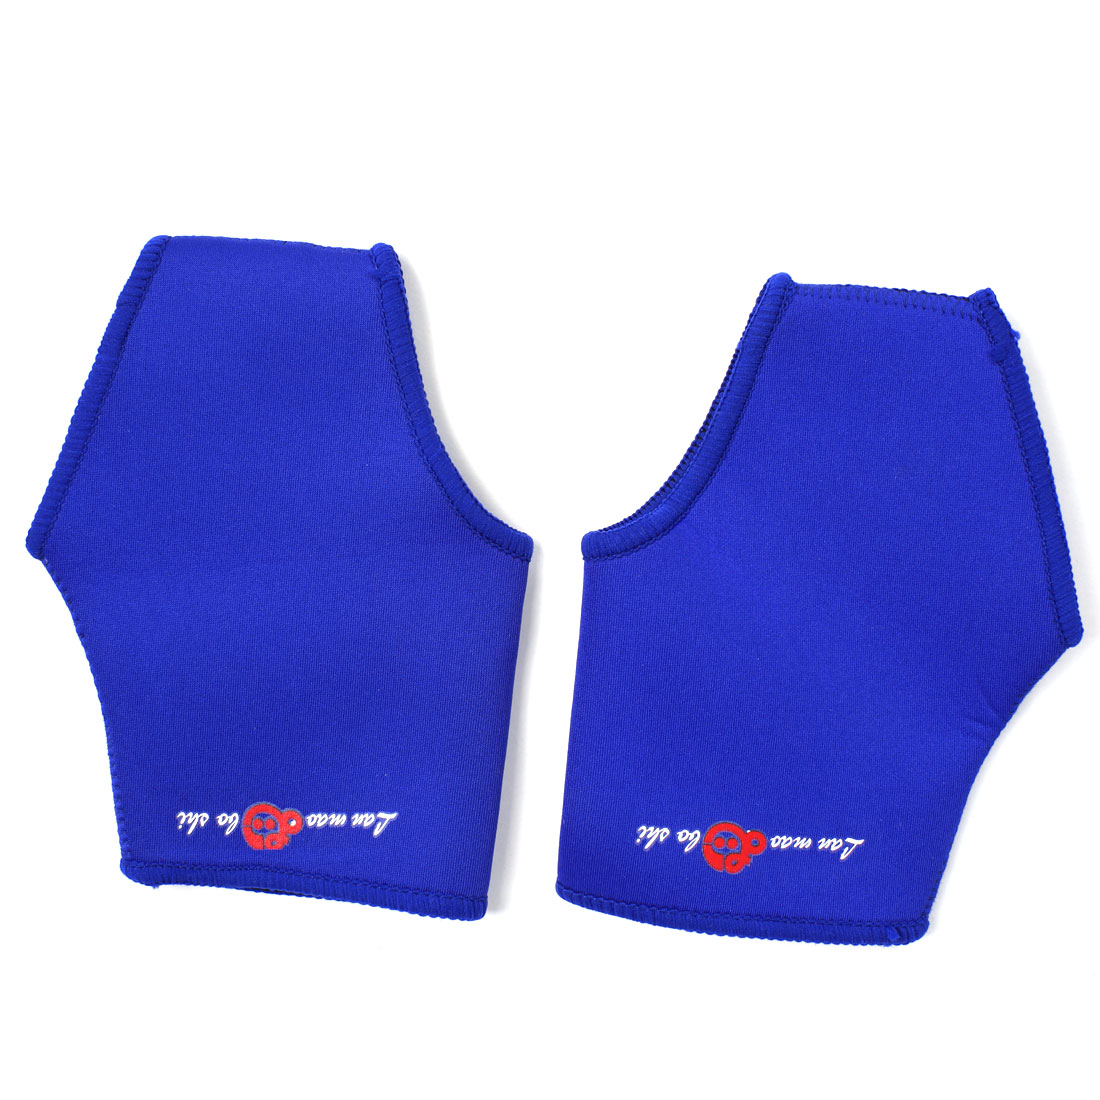 2 Pcs Blue Sports Elastic Neoprene Protector Ankle Support